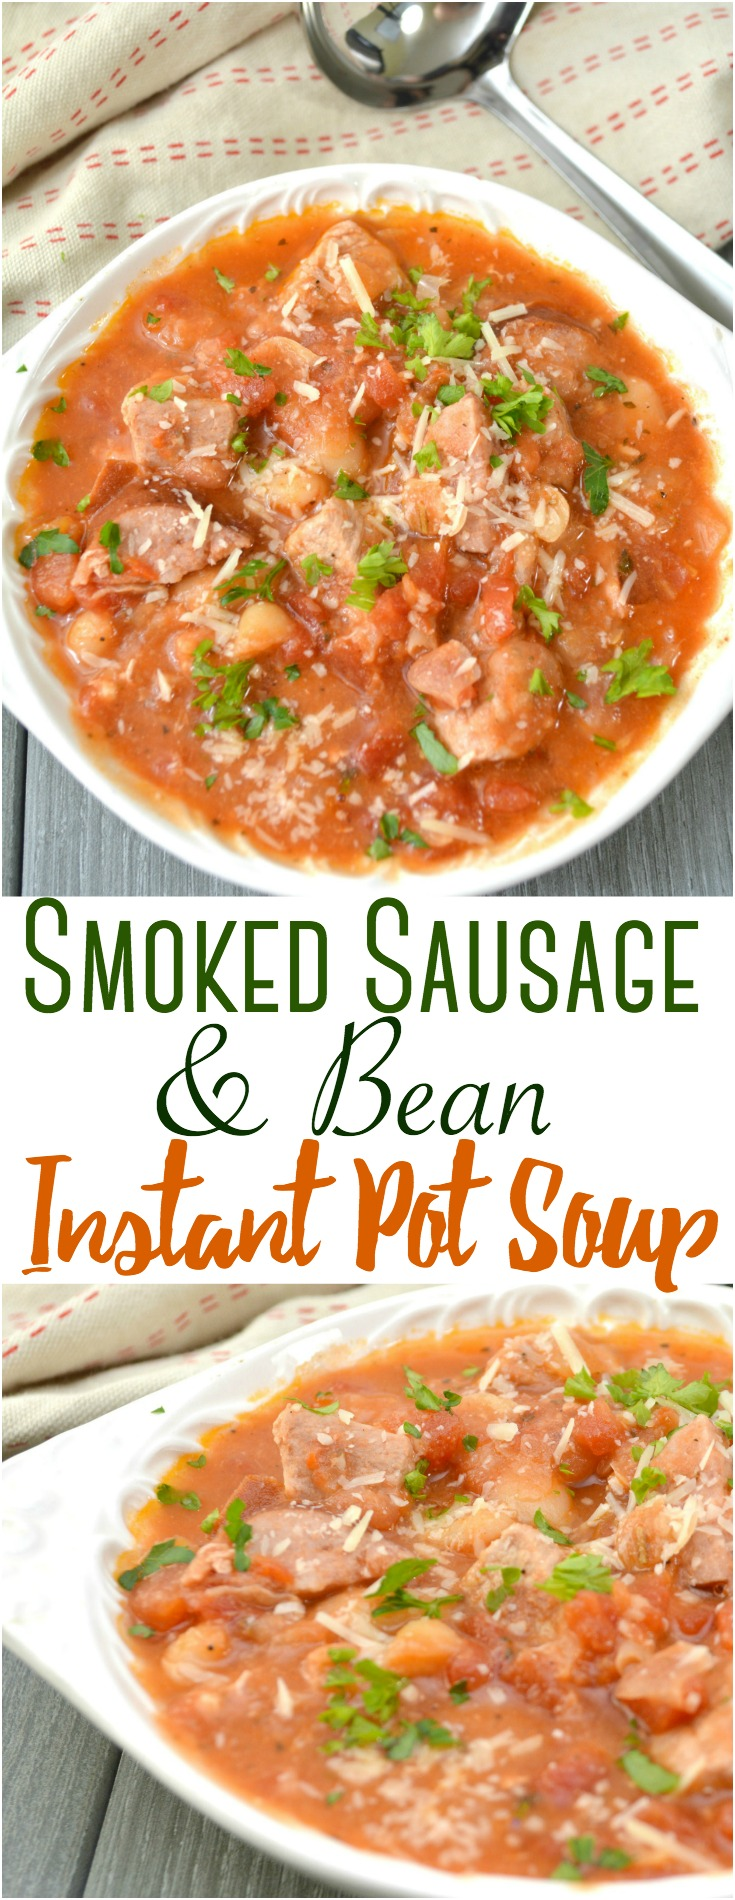 This easy yet hearty Pork, Smoked Sausage and Bean Instant Pot soup comes together quickly and easily for busy weeknights!